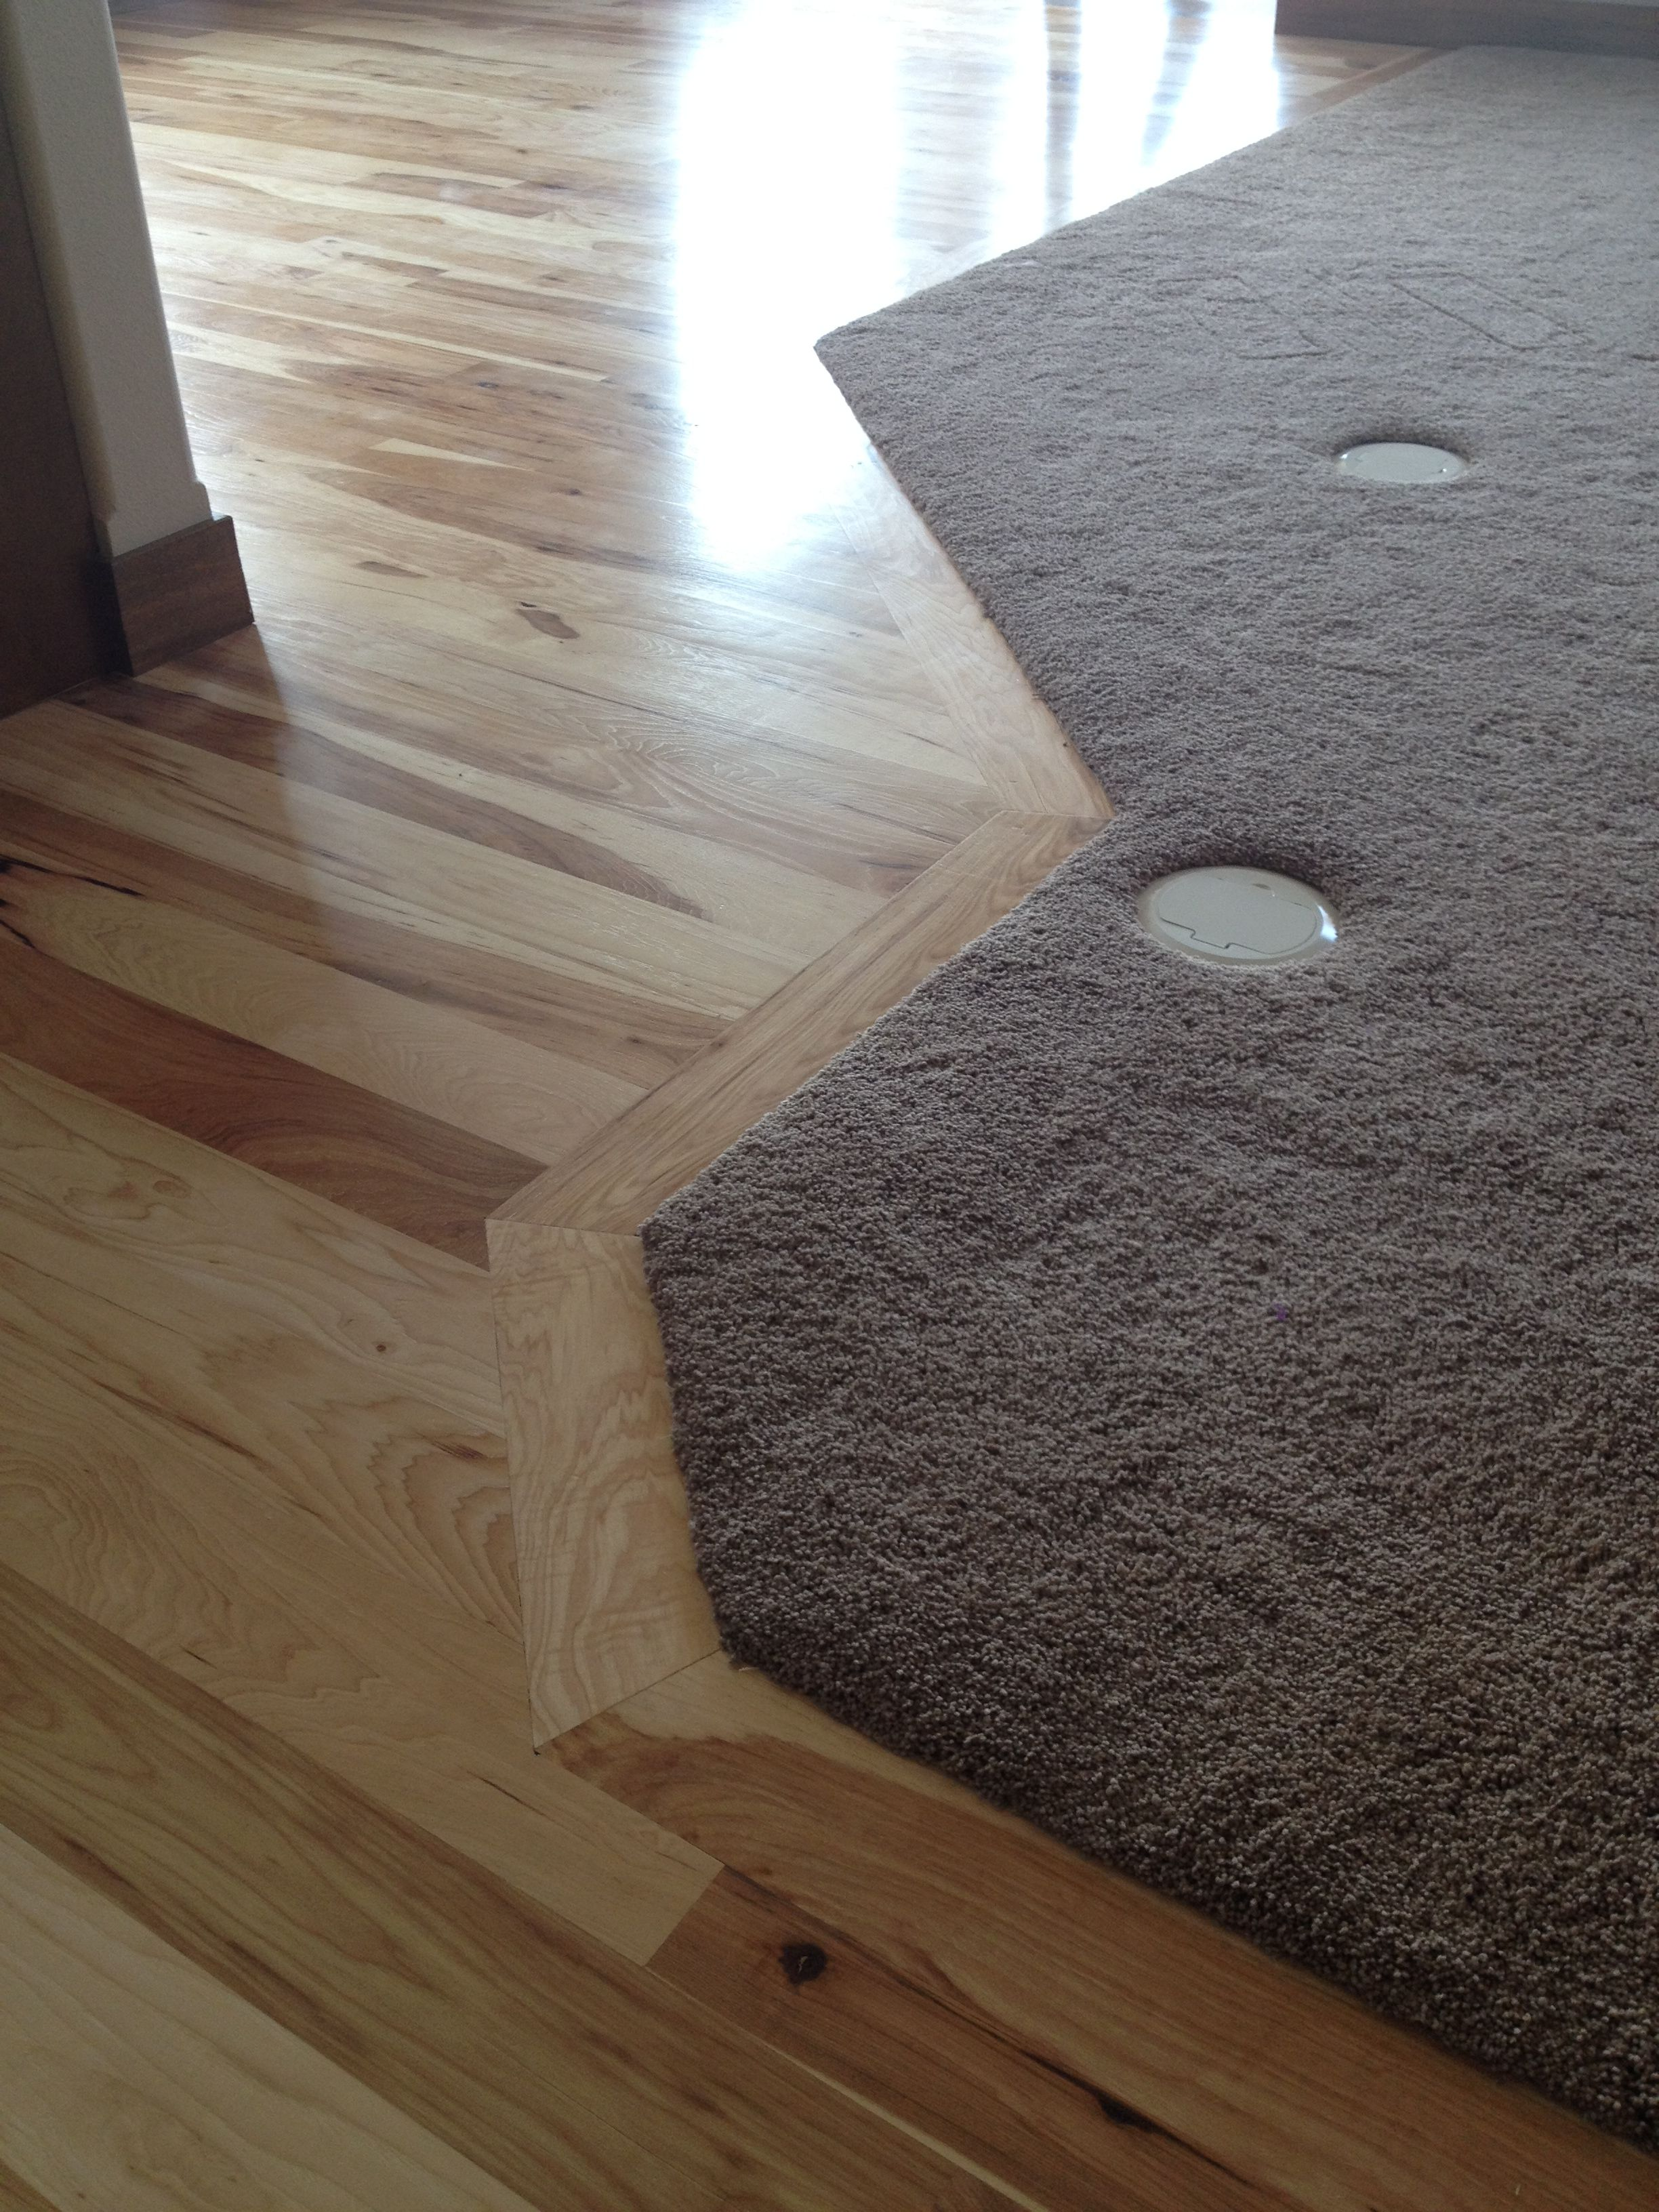 Living room carpet transition to hardwood in kitchen and ...